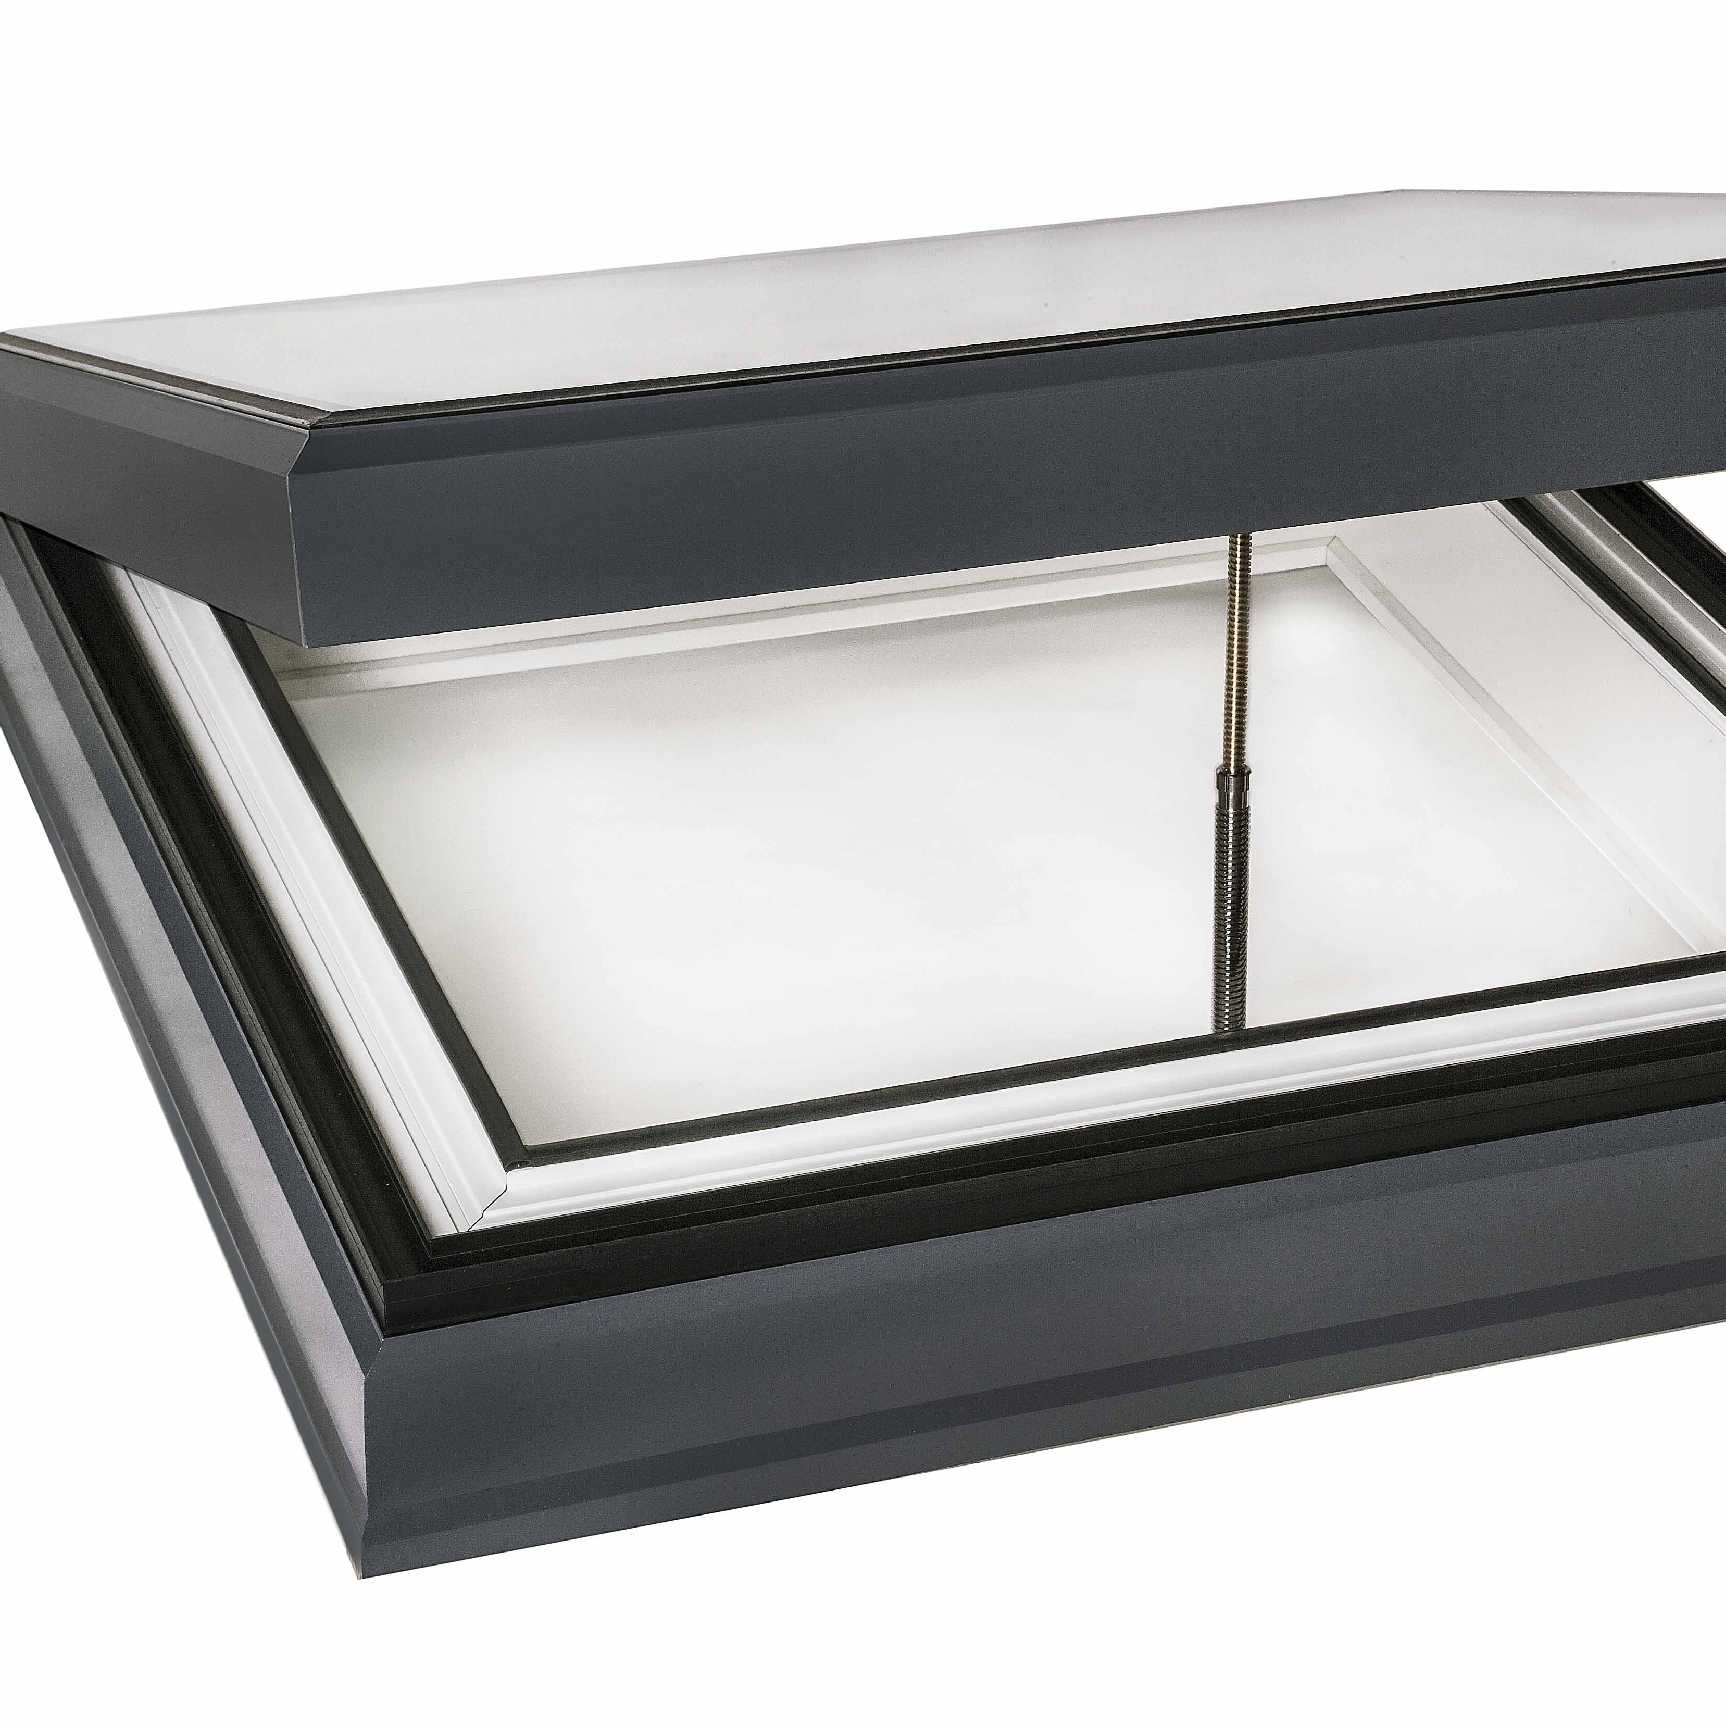 Great deals on EcoGard Flat Roof light, Double Glazed, Electric Opening, 1,000mm x 1,000mm